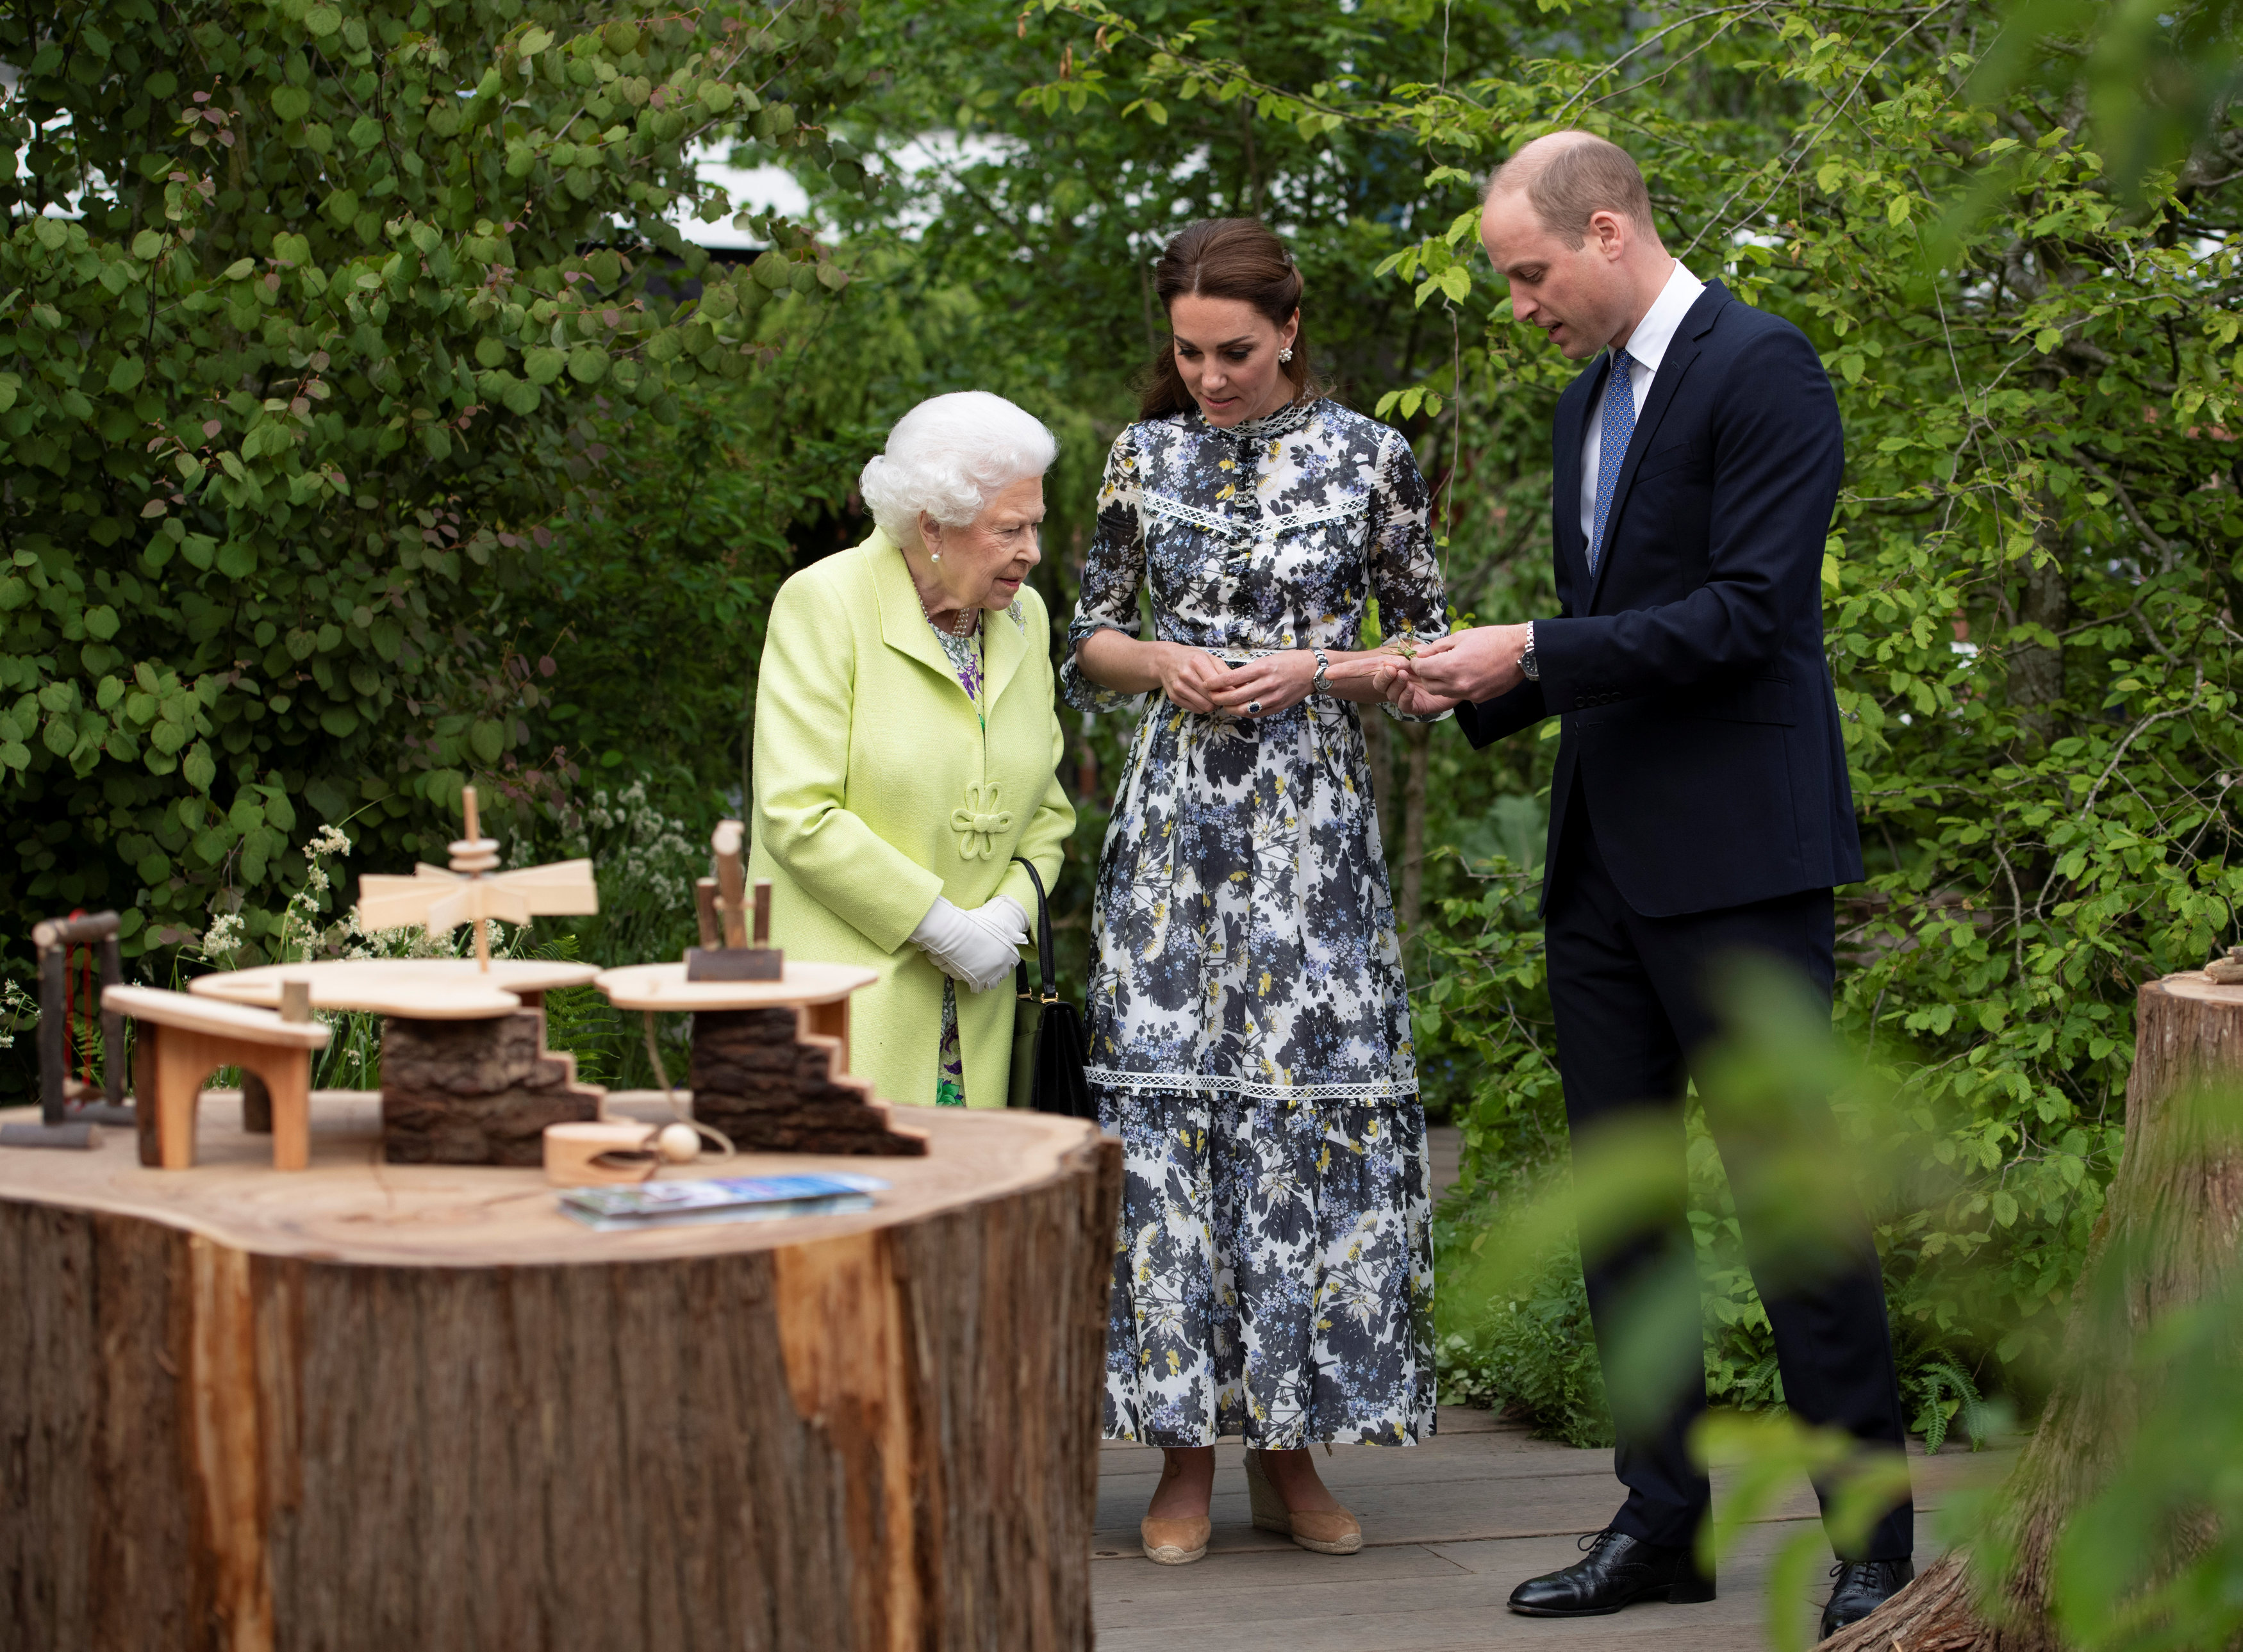 Britain's Queen Elizabeth II, is shown around 'Back to Nature' by Prince William and Catherine Duchess of Cambridge at the Chelsea Flower Show in London, Britain May 20, 2019. (Photo: Geoff Pugh/Pool via REUTERS)